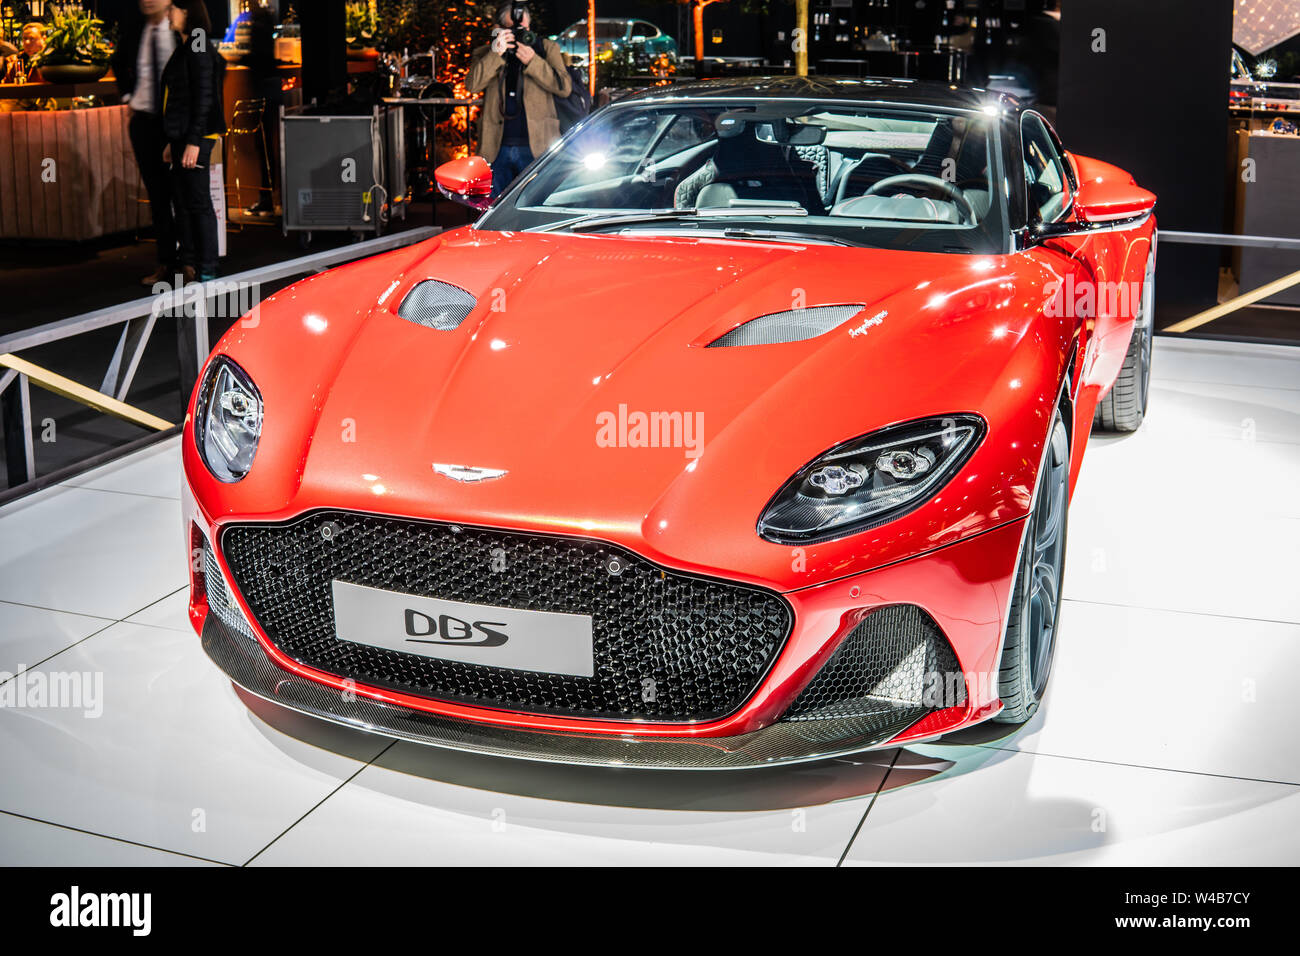 Brussels Belgium Jan 2019 Red Aston Martin Dbs Brussels Motor Show Dream Cars British Super Grand Tourer Manufactured By Aston Martin Stock Photo Alamy